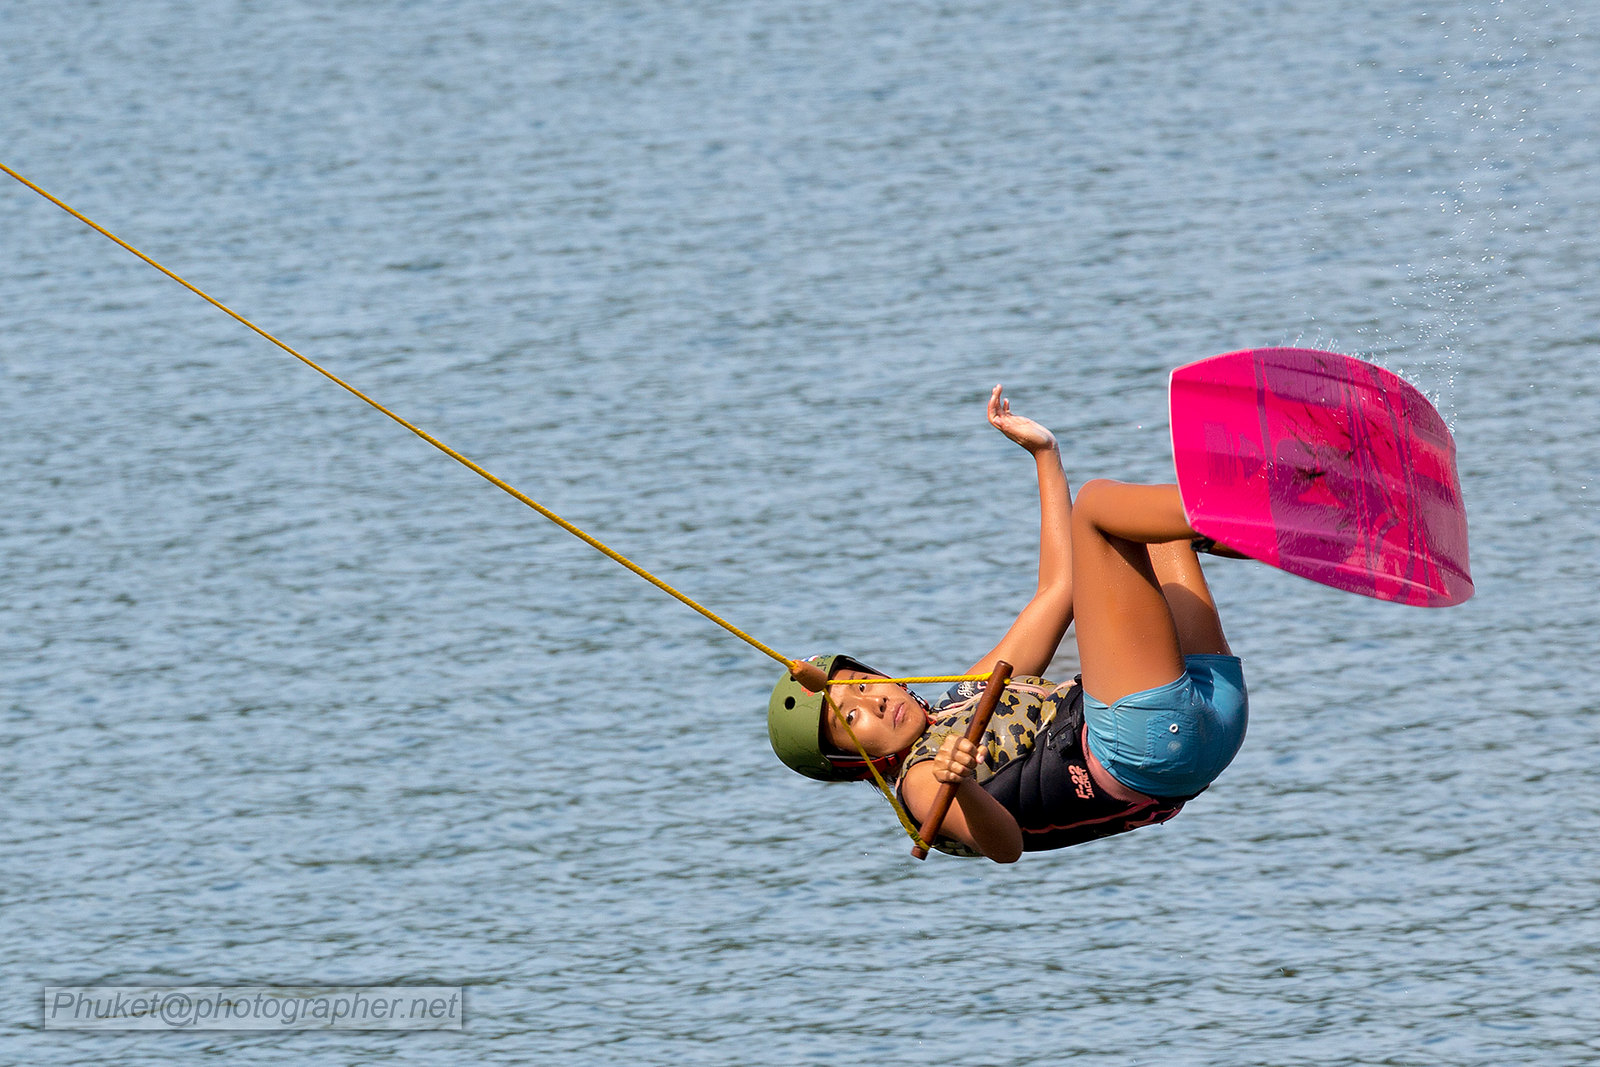 Girl jumping on a wakeboard